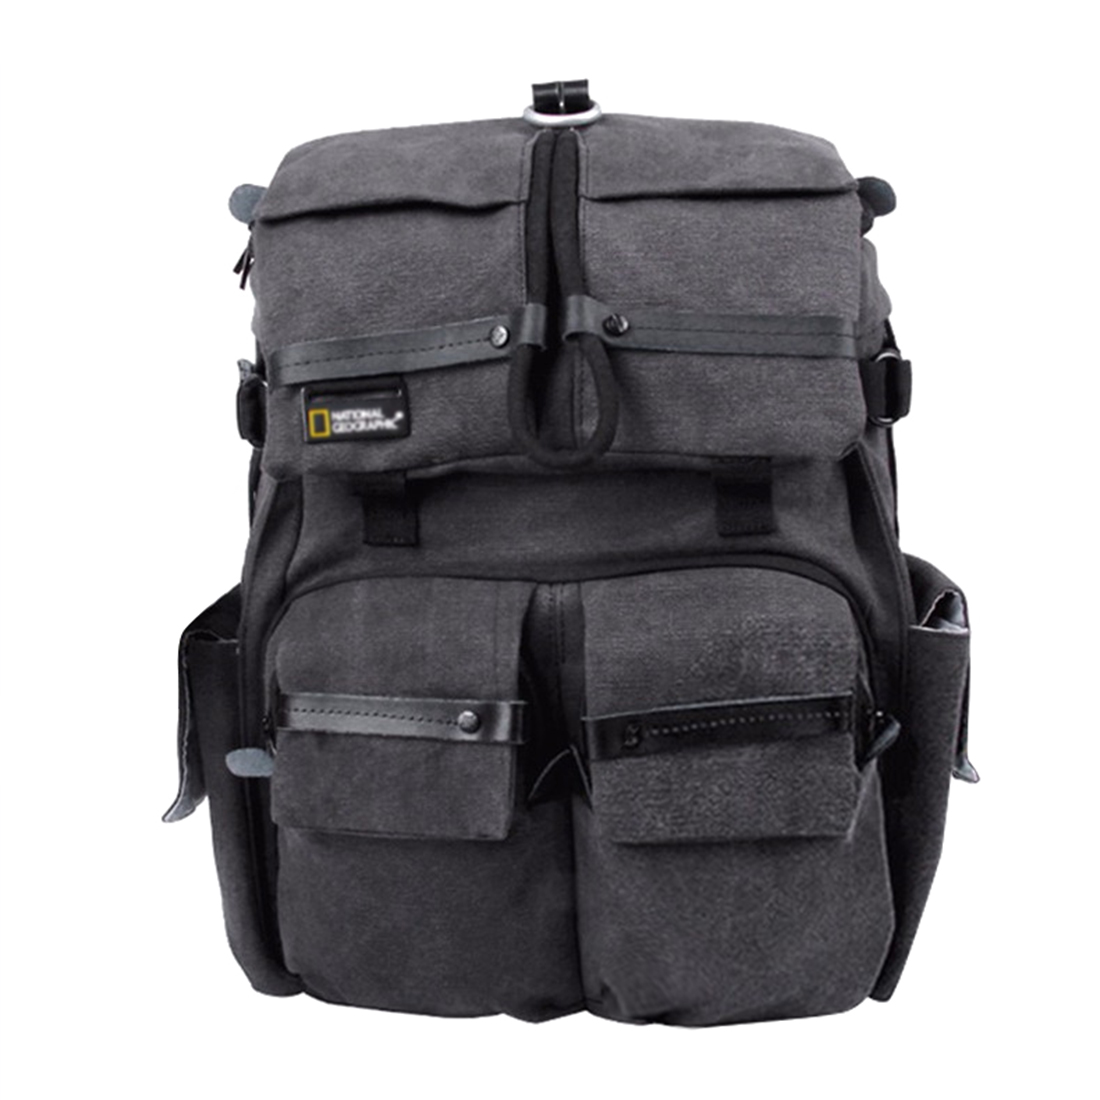 High Quality Camera Bag NATIONAL GEOGRAPHIC NG W5070 Camera Backpack Genuine Outdoor Travel Camera Bag (Extra thick version) alternativa корзина для белья плетёнка 60л alternativa слоновая кость